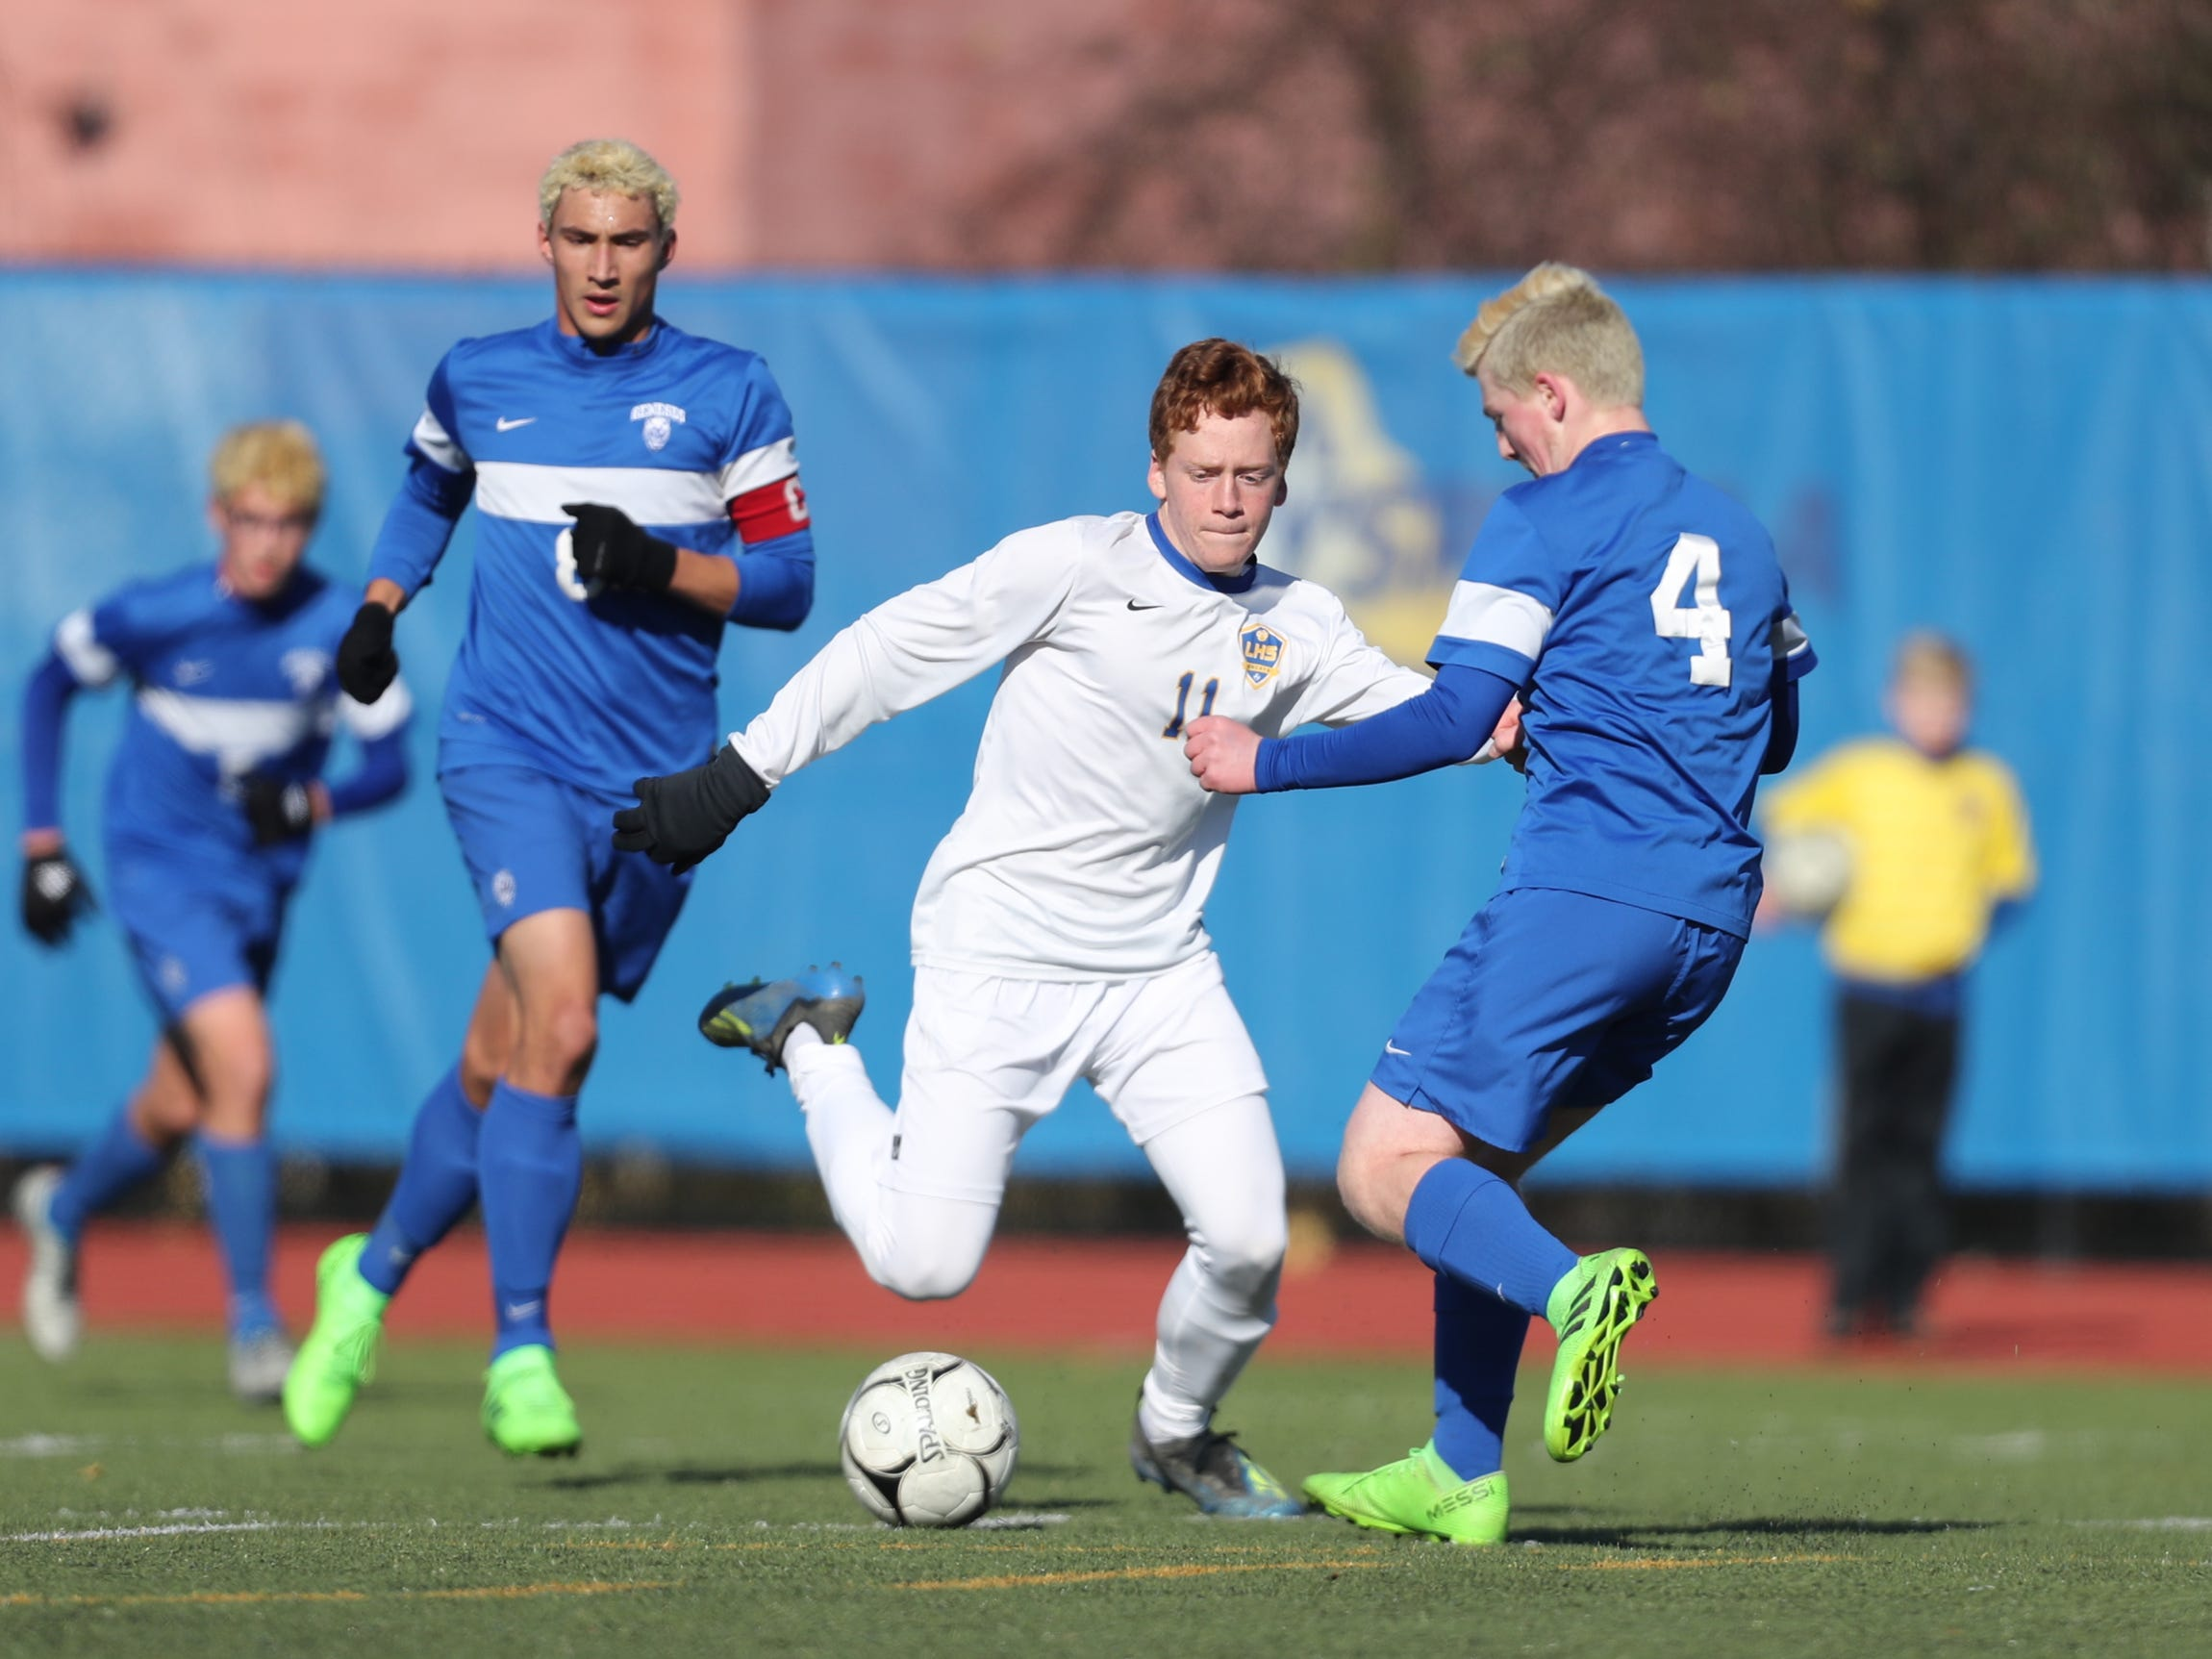 Lansing's Kyle Romeo (11) and Jonathan Edmunds (4) battle for possession during the Class C boys state soccer final at Middletown High School in Middletown on Sunday, November 11, 2018.  Lansing won 3-0.